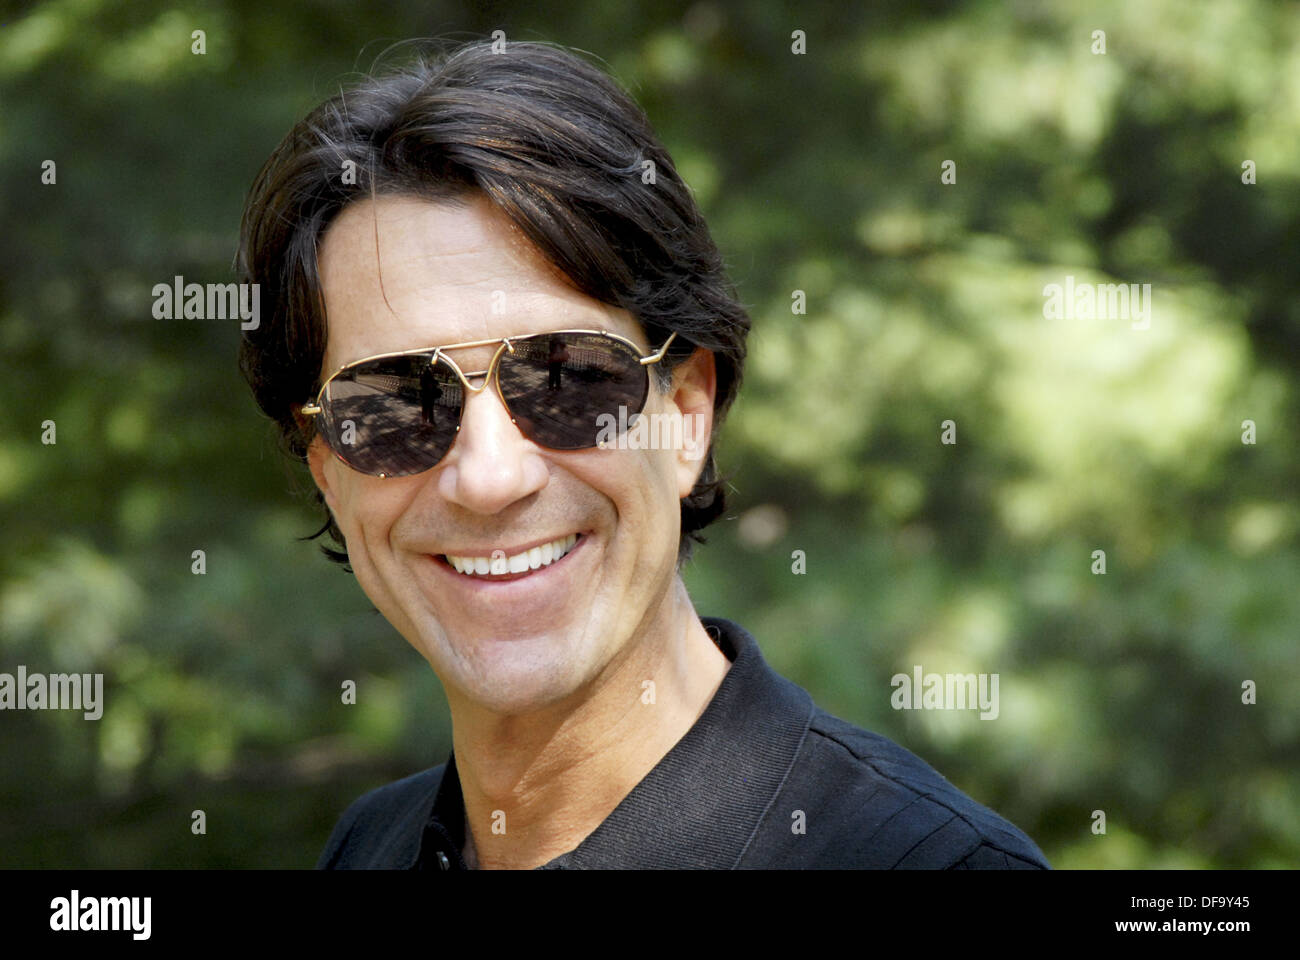 40-45 year old caucasian male, wearing sunglasses - Stock Image